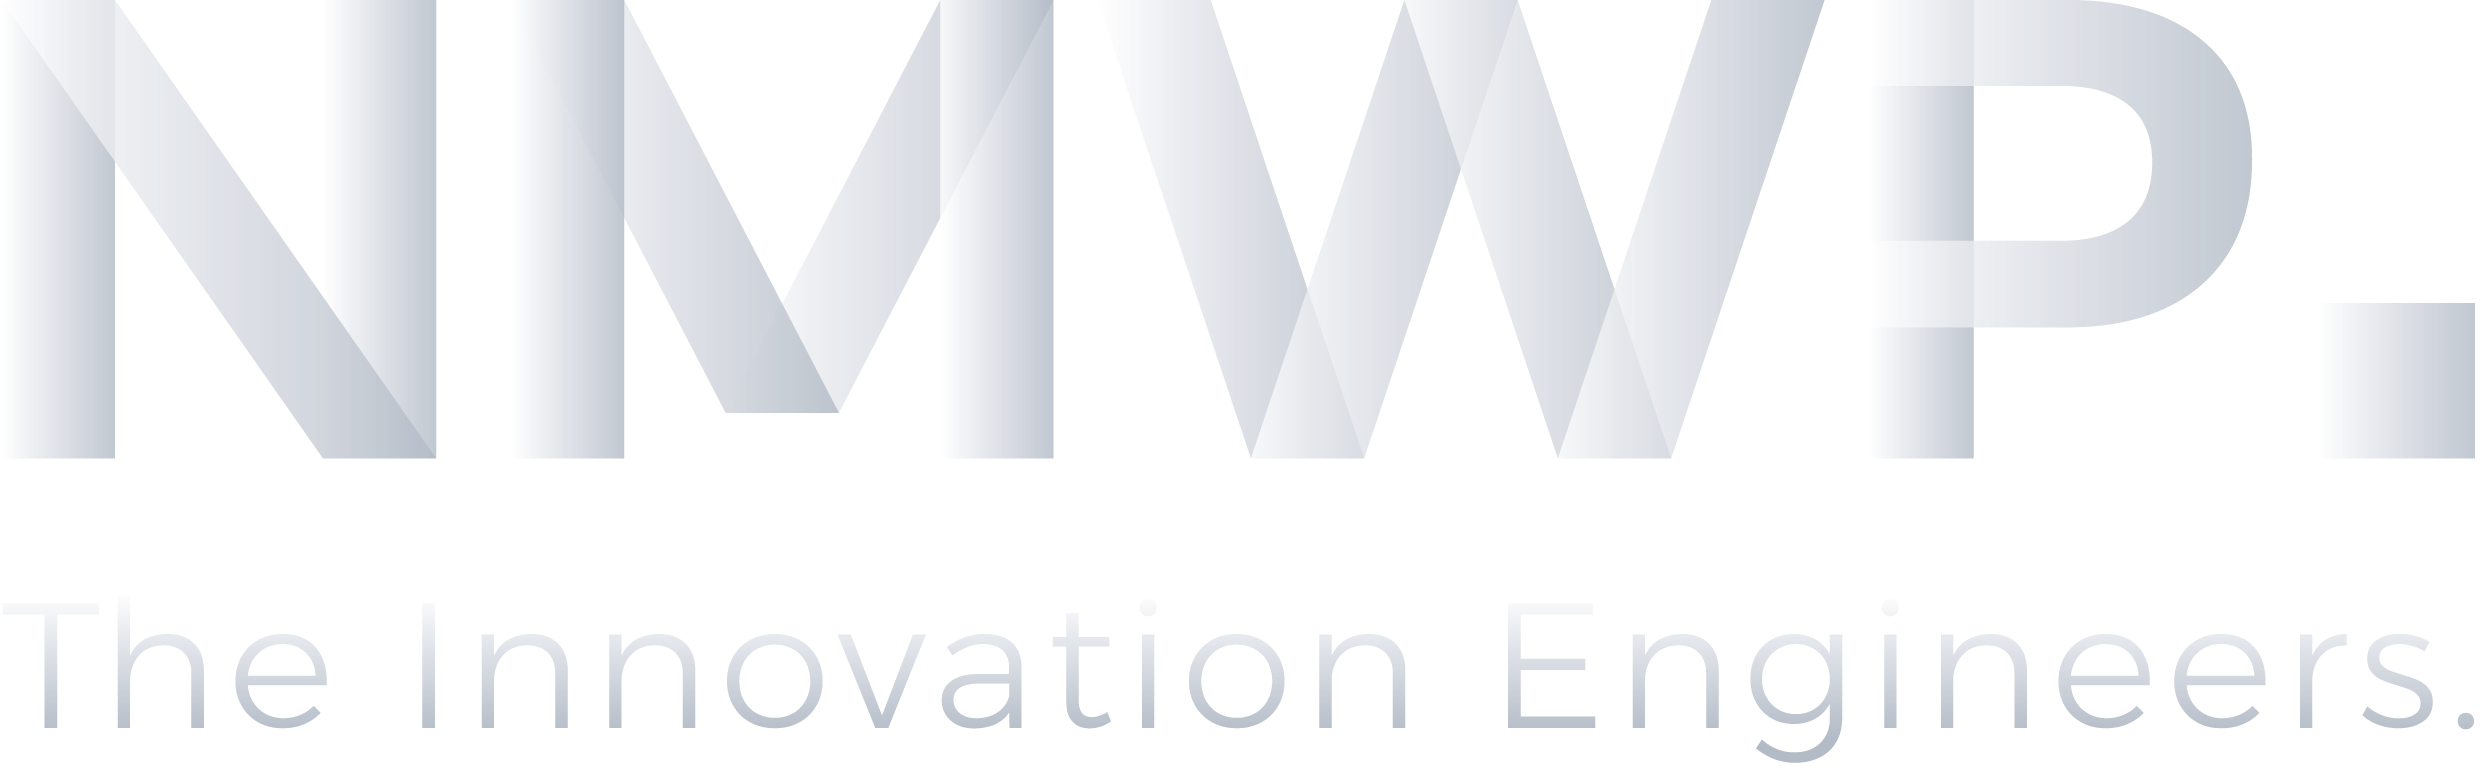 NMWP Management GmbH